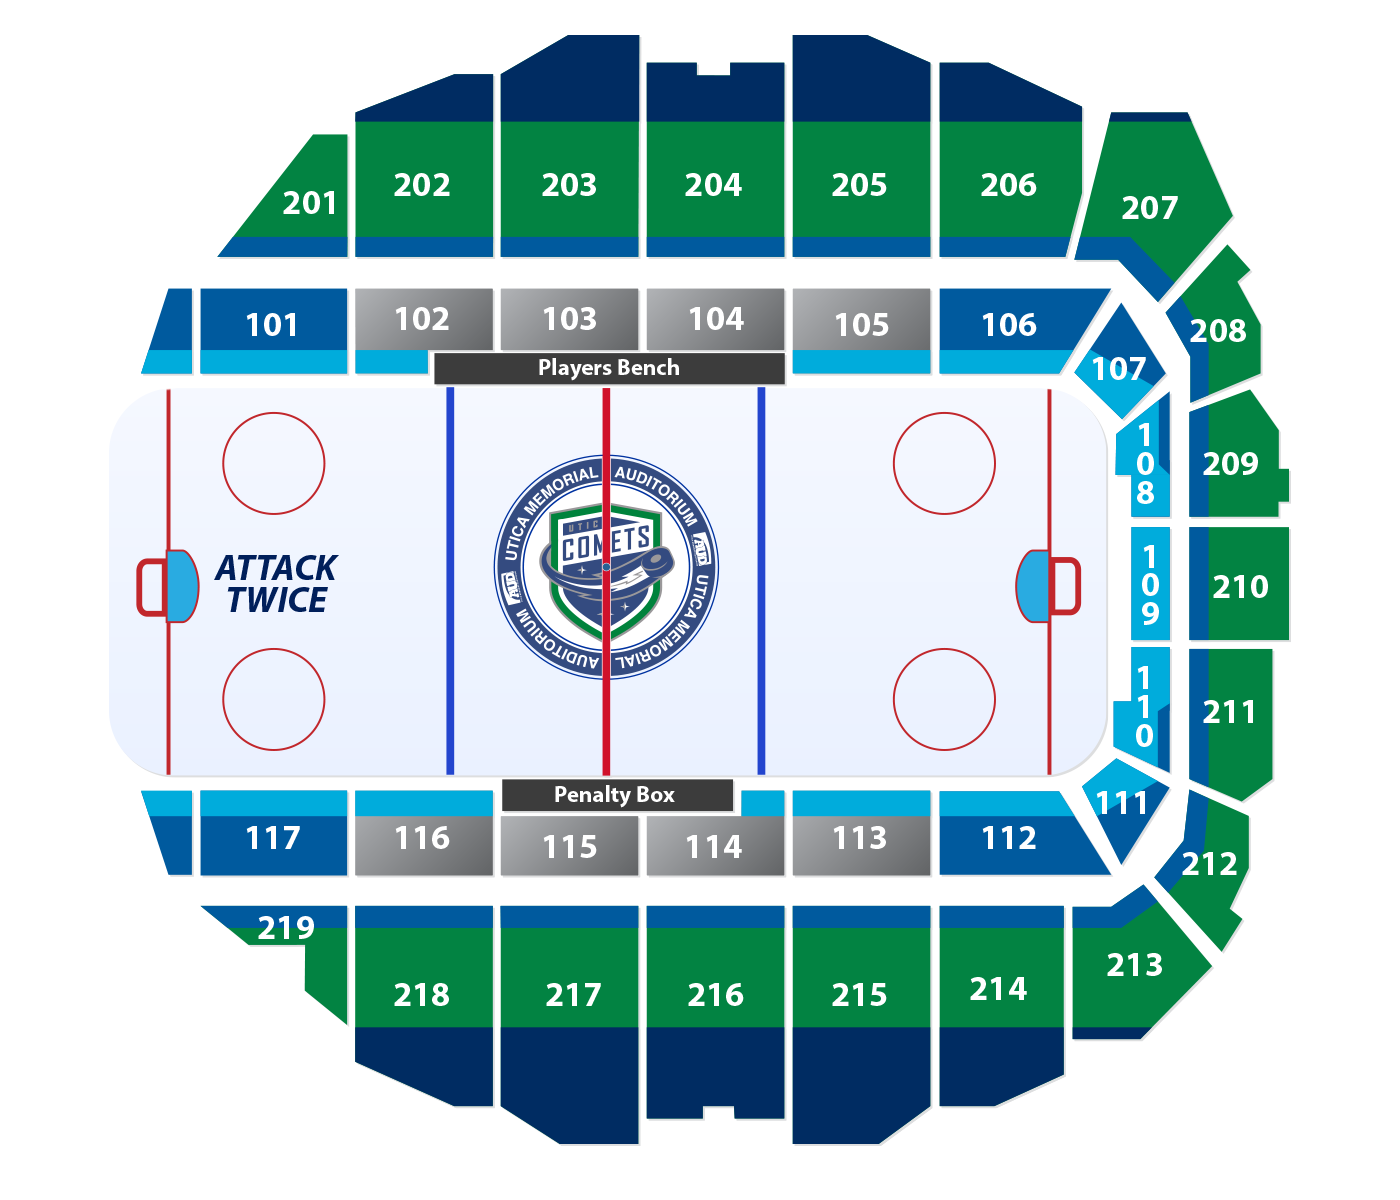 tickets_seatmap.png